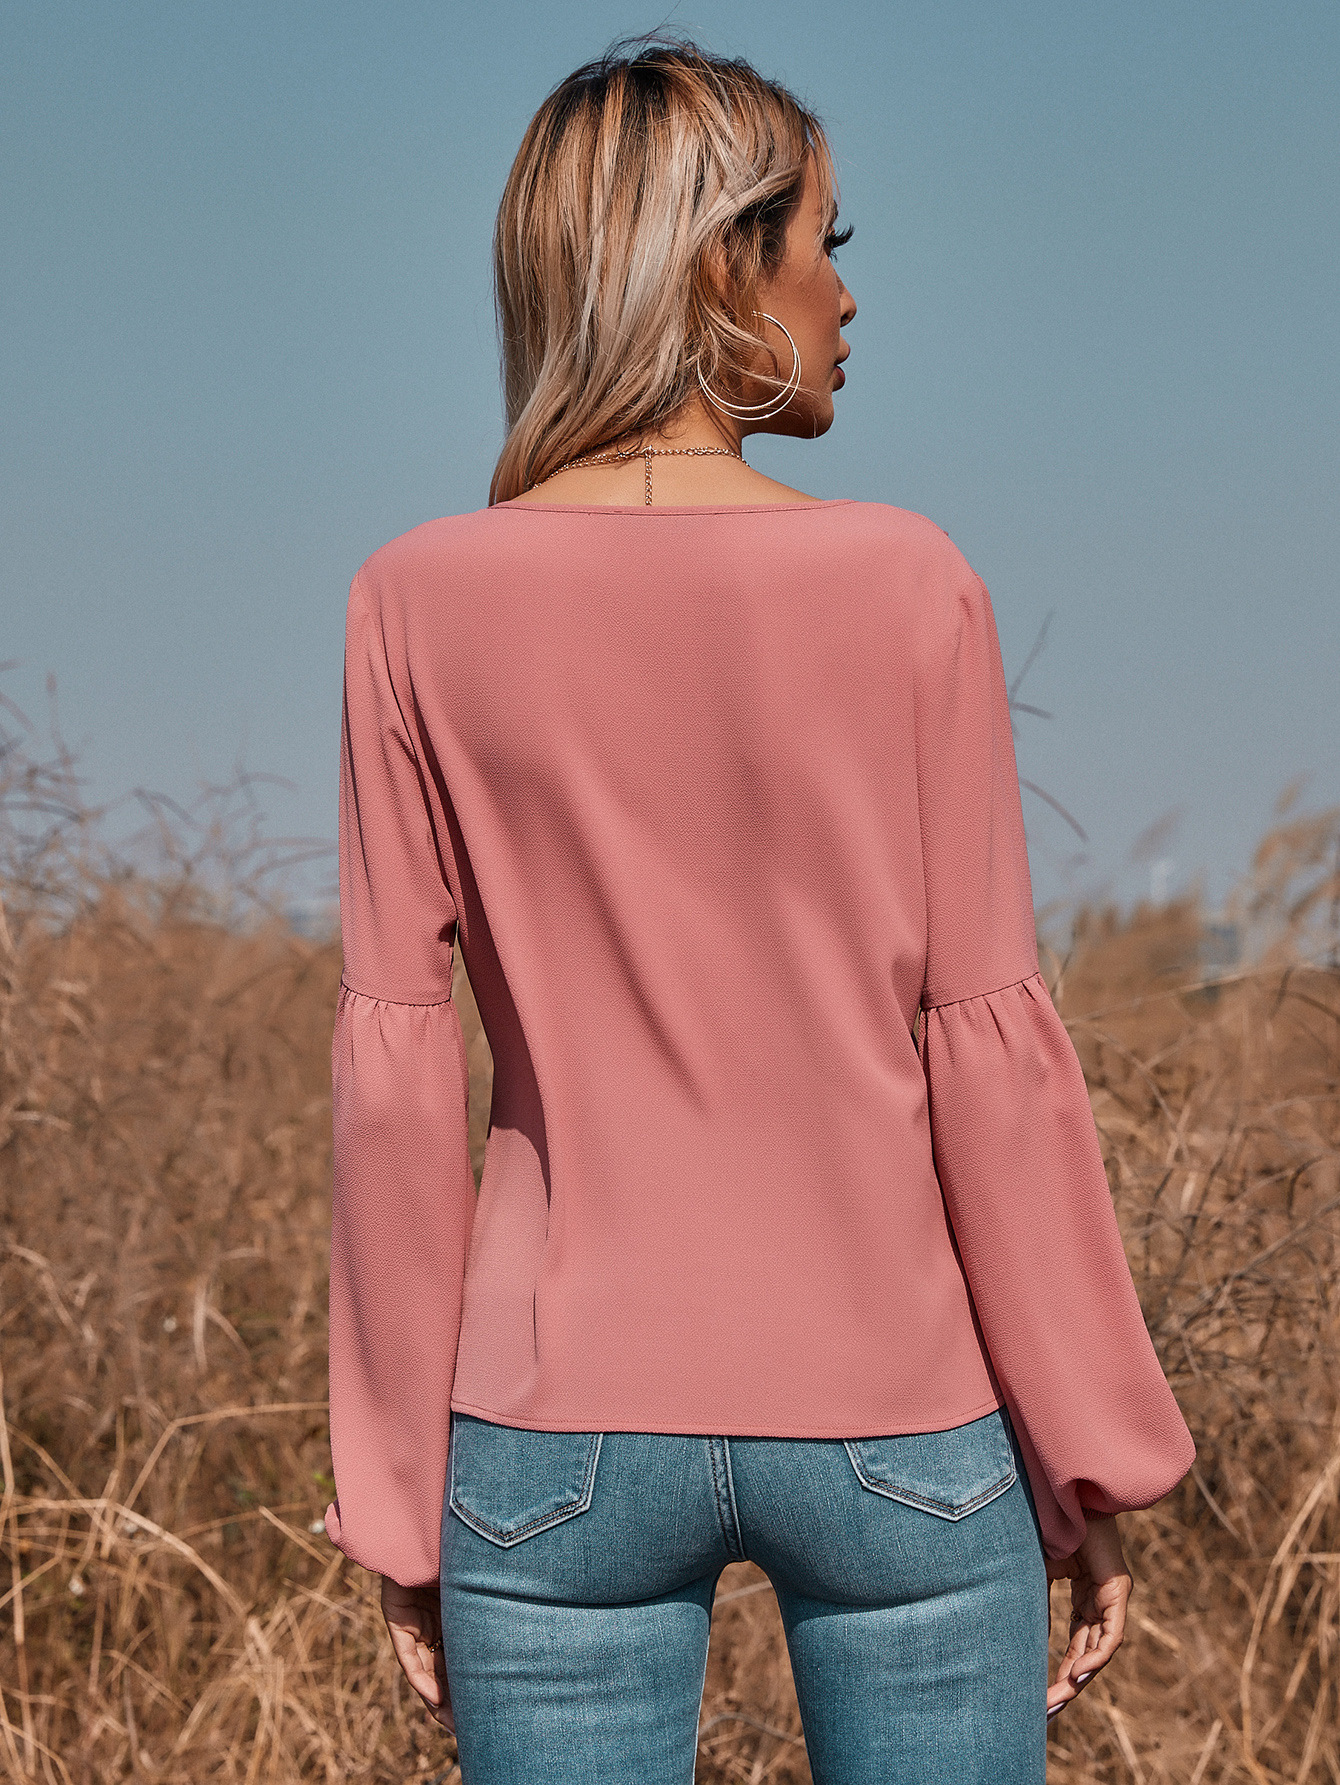 V-neck Tie Long Sleeve Top NSGHY43730